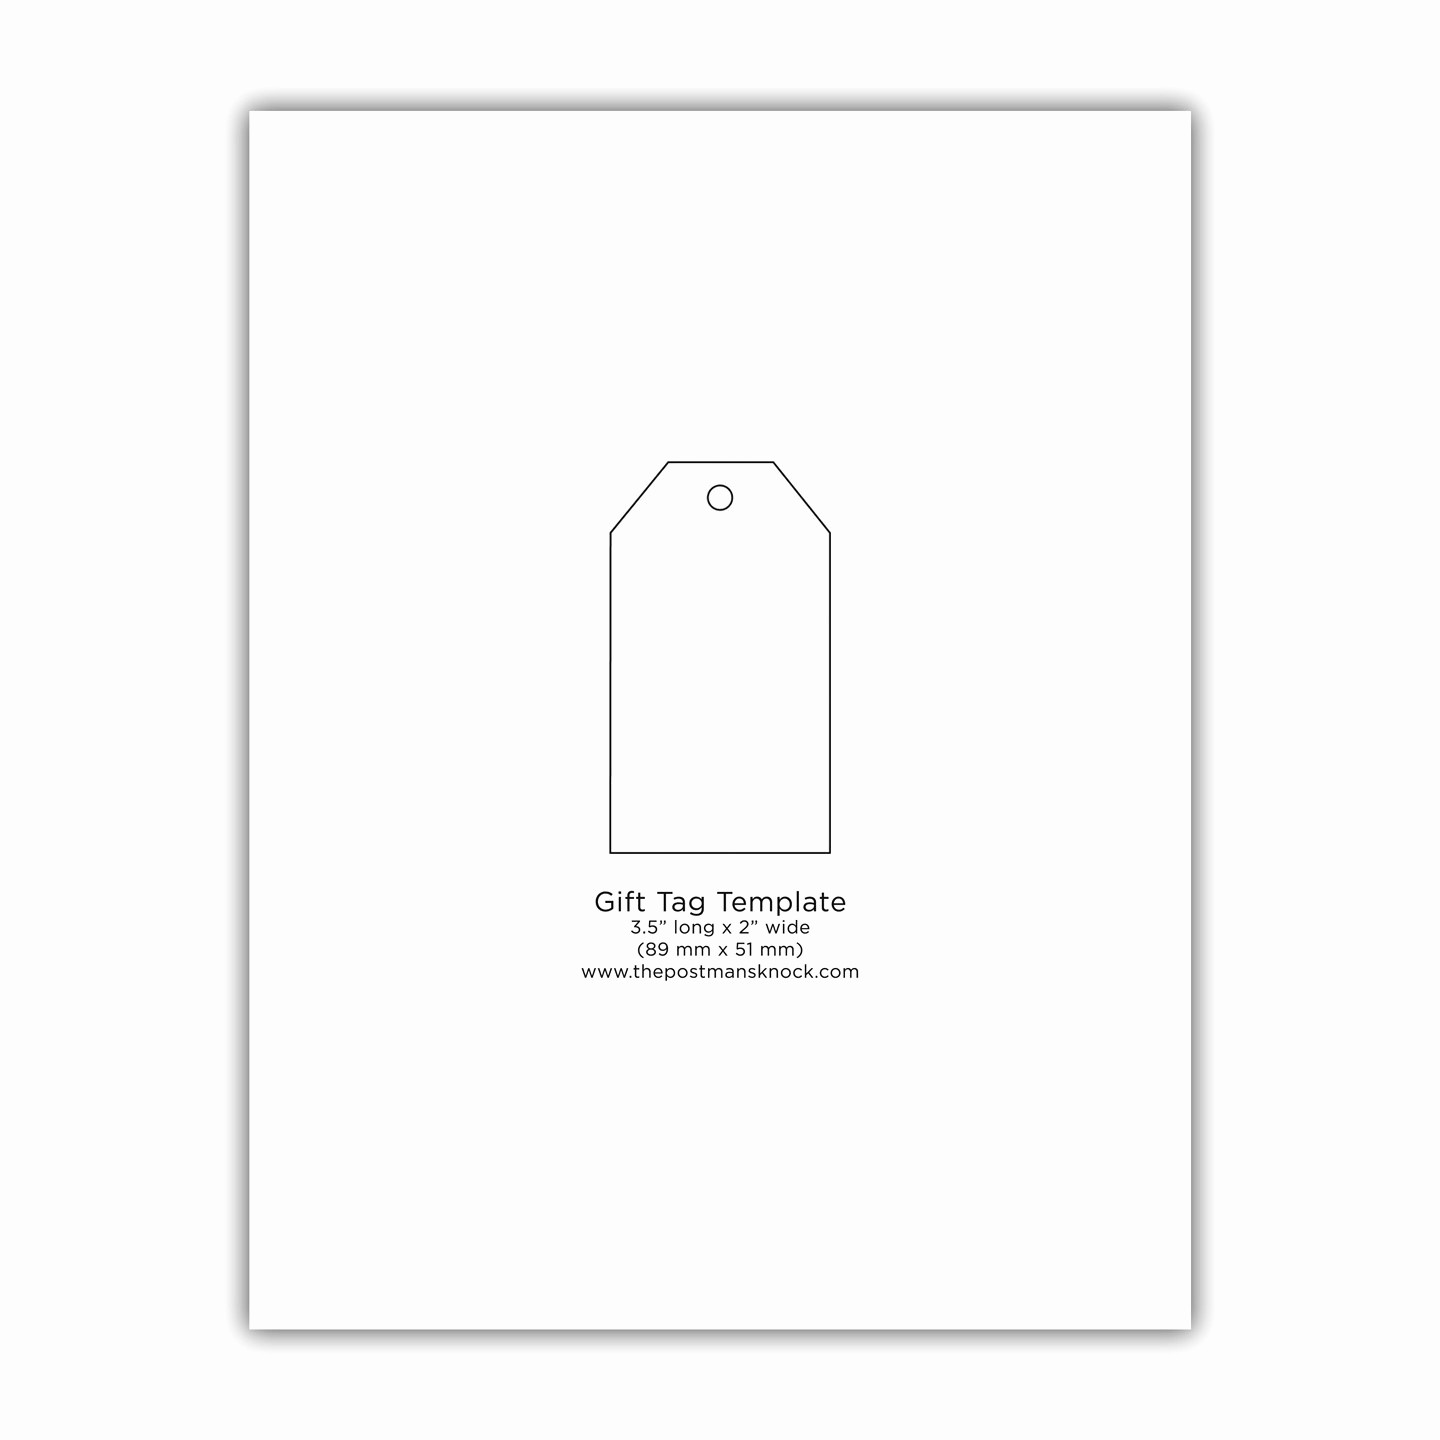 A Gift for You Template Lovely Printable Simple Gift Tag Template – the Postman S Knock